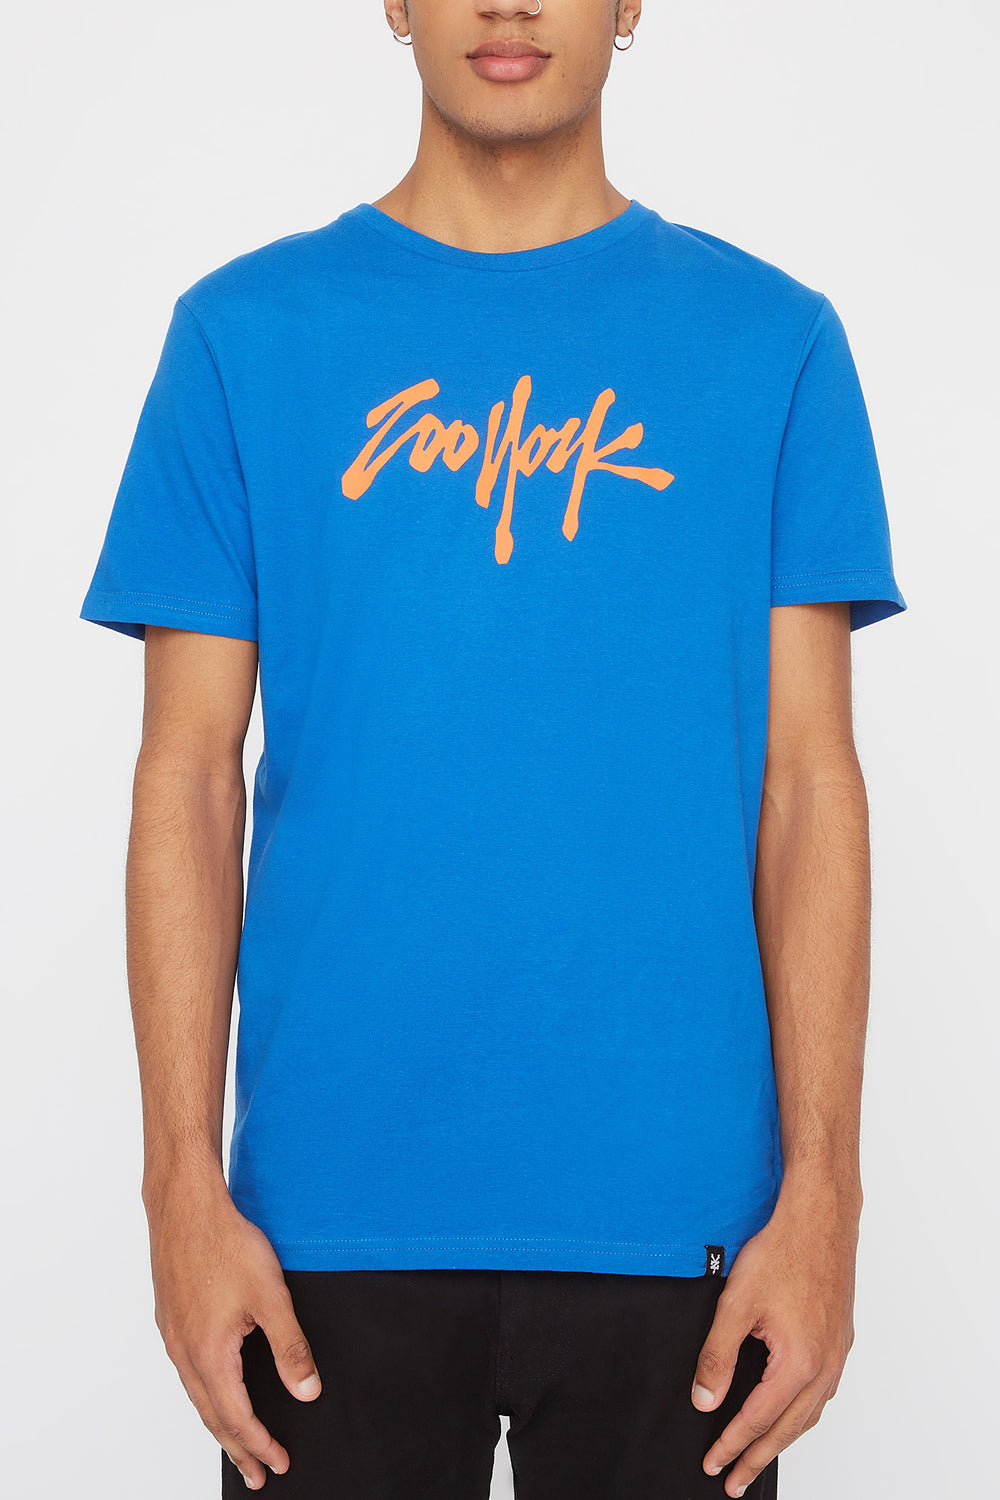 T-Shirt Quartiers NYC Zoo York Homme Bleu